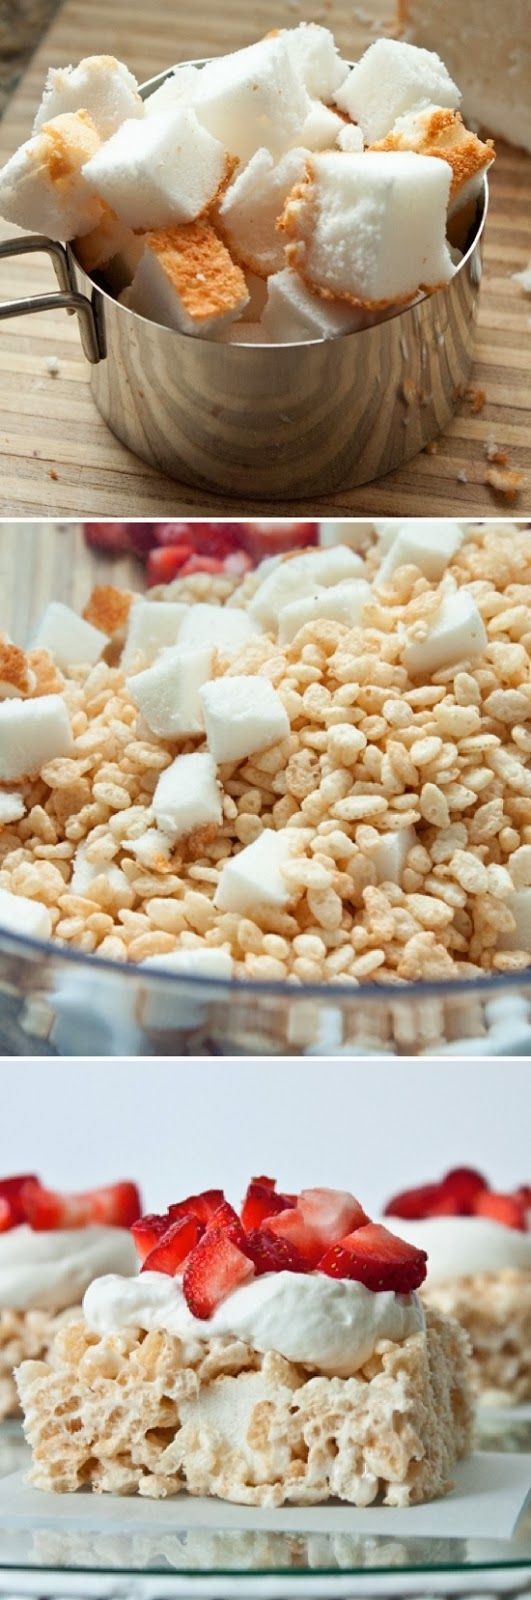 Strawberry Shortcake Rice Krispy Squares OMG!!! Ingredients 2 1/2 c. Rice Krispie Cereal 1 heaping cup angel food cake squares 2 1/4 c. marshmallows 1 1/2 tbsp butter 1 c whipping cream 2-3 tbsp sugar (depending on how sweet you like it) 1 tsp vanilla 2 cups diced strawberries